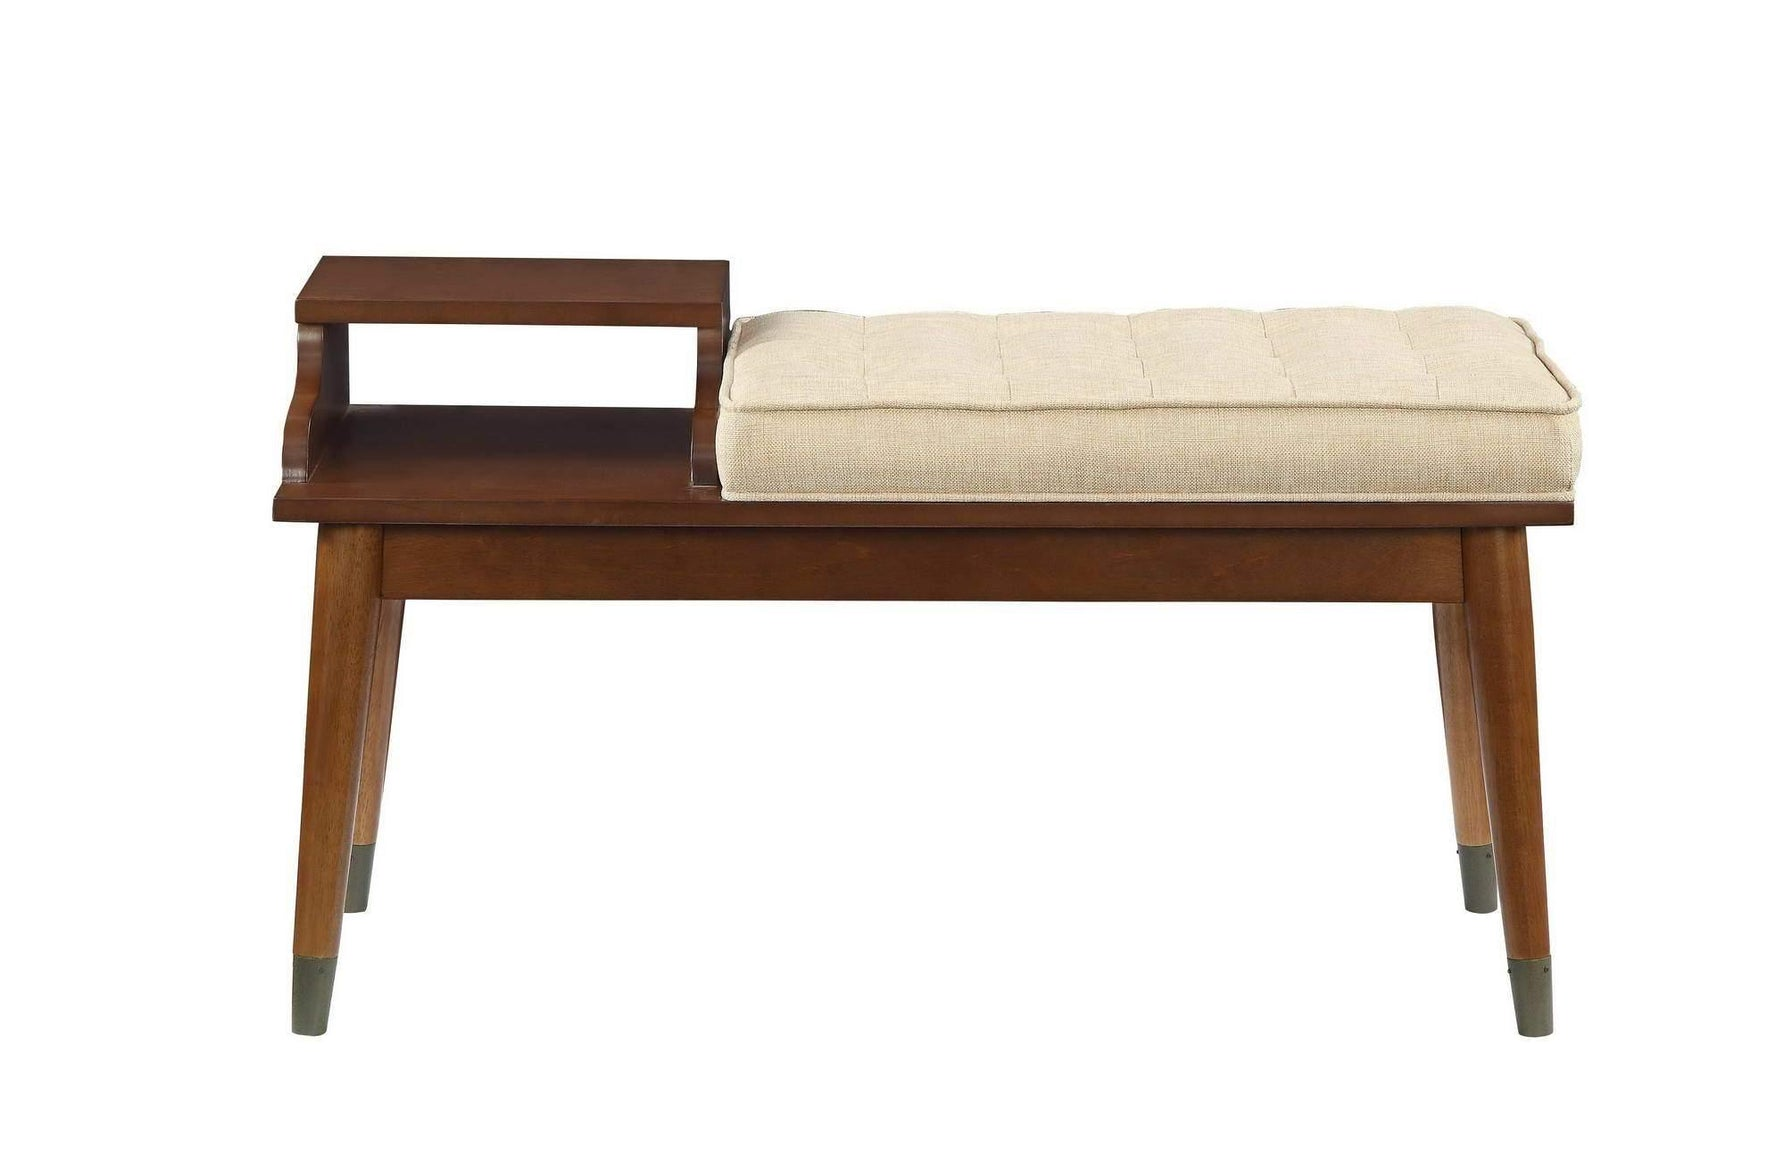 Elegant Hallway Bench, Mid Century, Upholstered - My USA Furniture